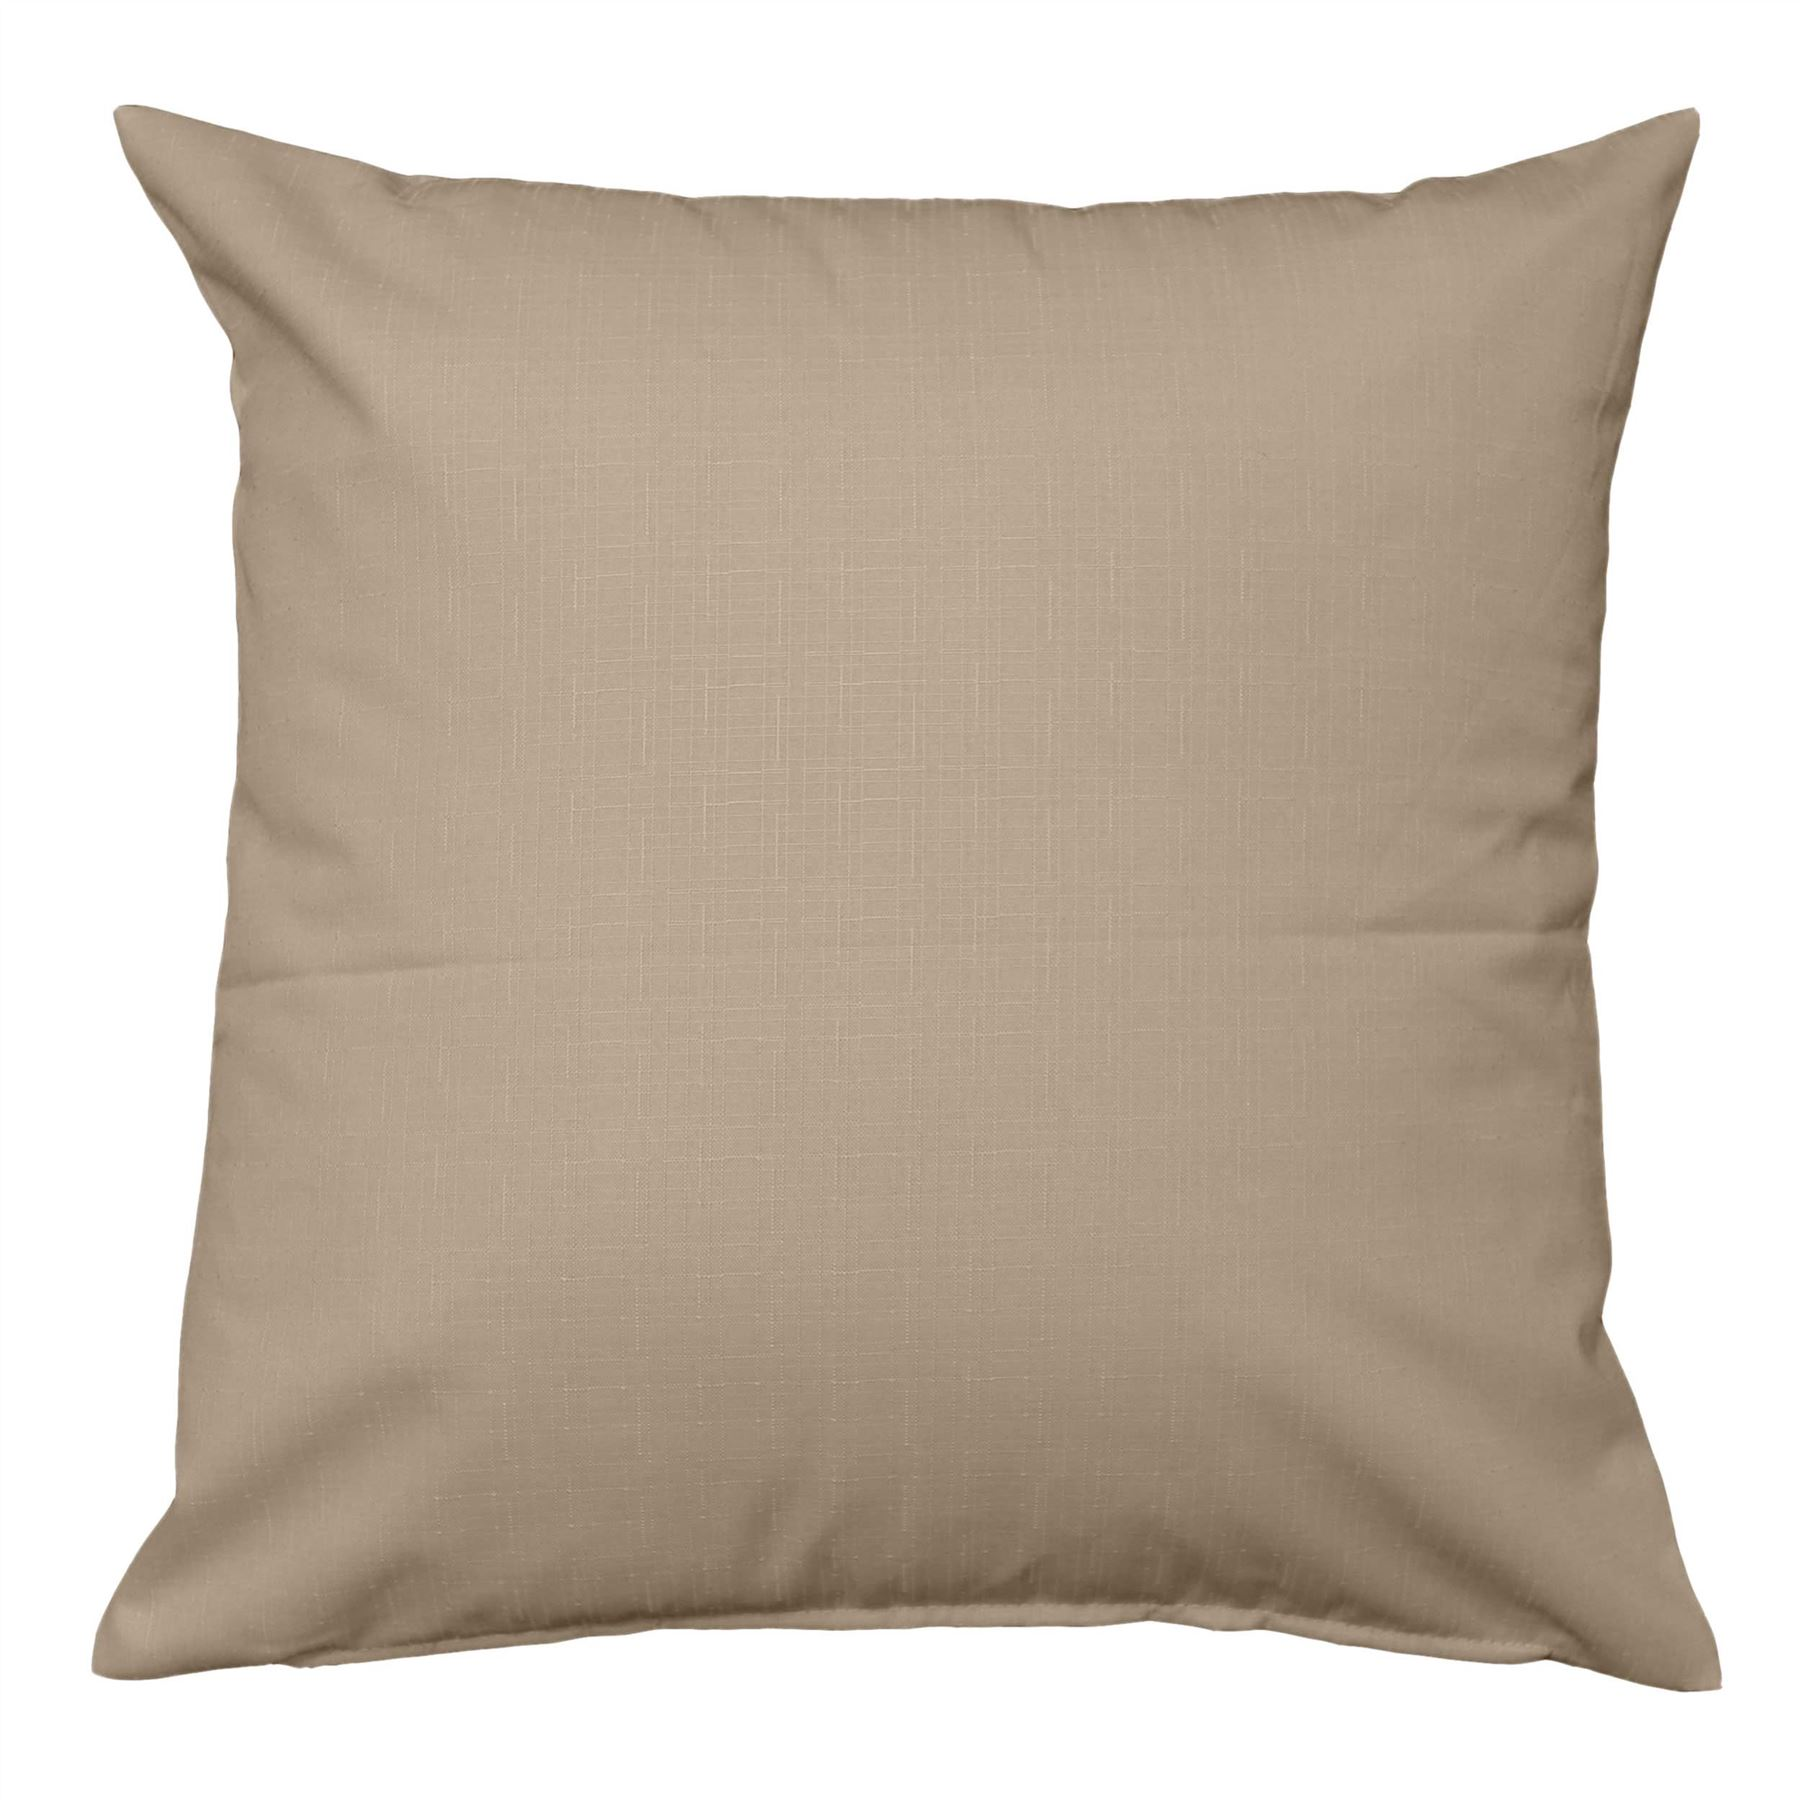 Blackout Filled Sofa Cushion Covers Decorative Scatter